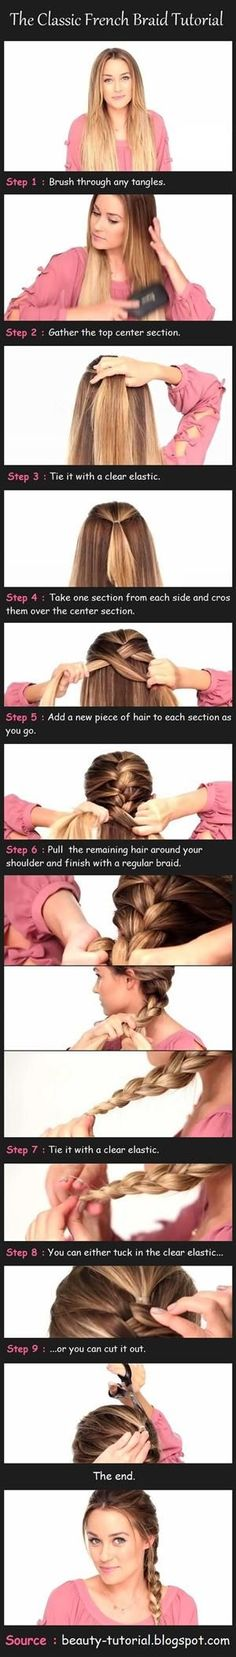 Great trick to french braiding your own hair... I've always wanted to know how to French braid